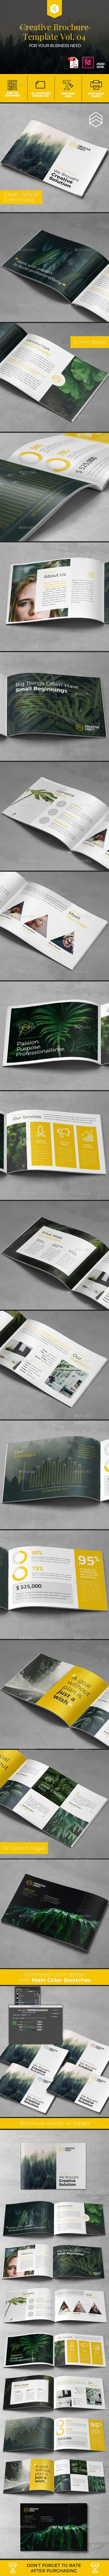 A5 Creative Brochure Template Vol. 04 - Corporate #Brochures Download here: https://graphicriver.net/item/a5-creative-brochure-template-vol-04/19736154?ref=alena994